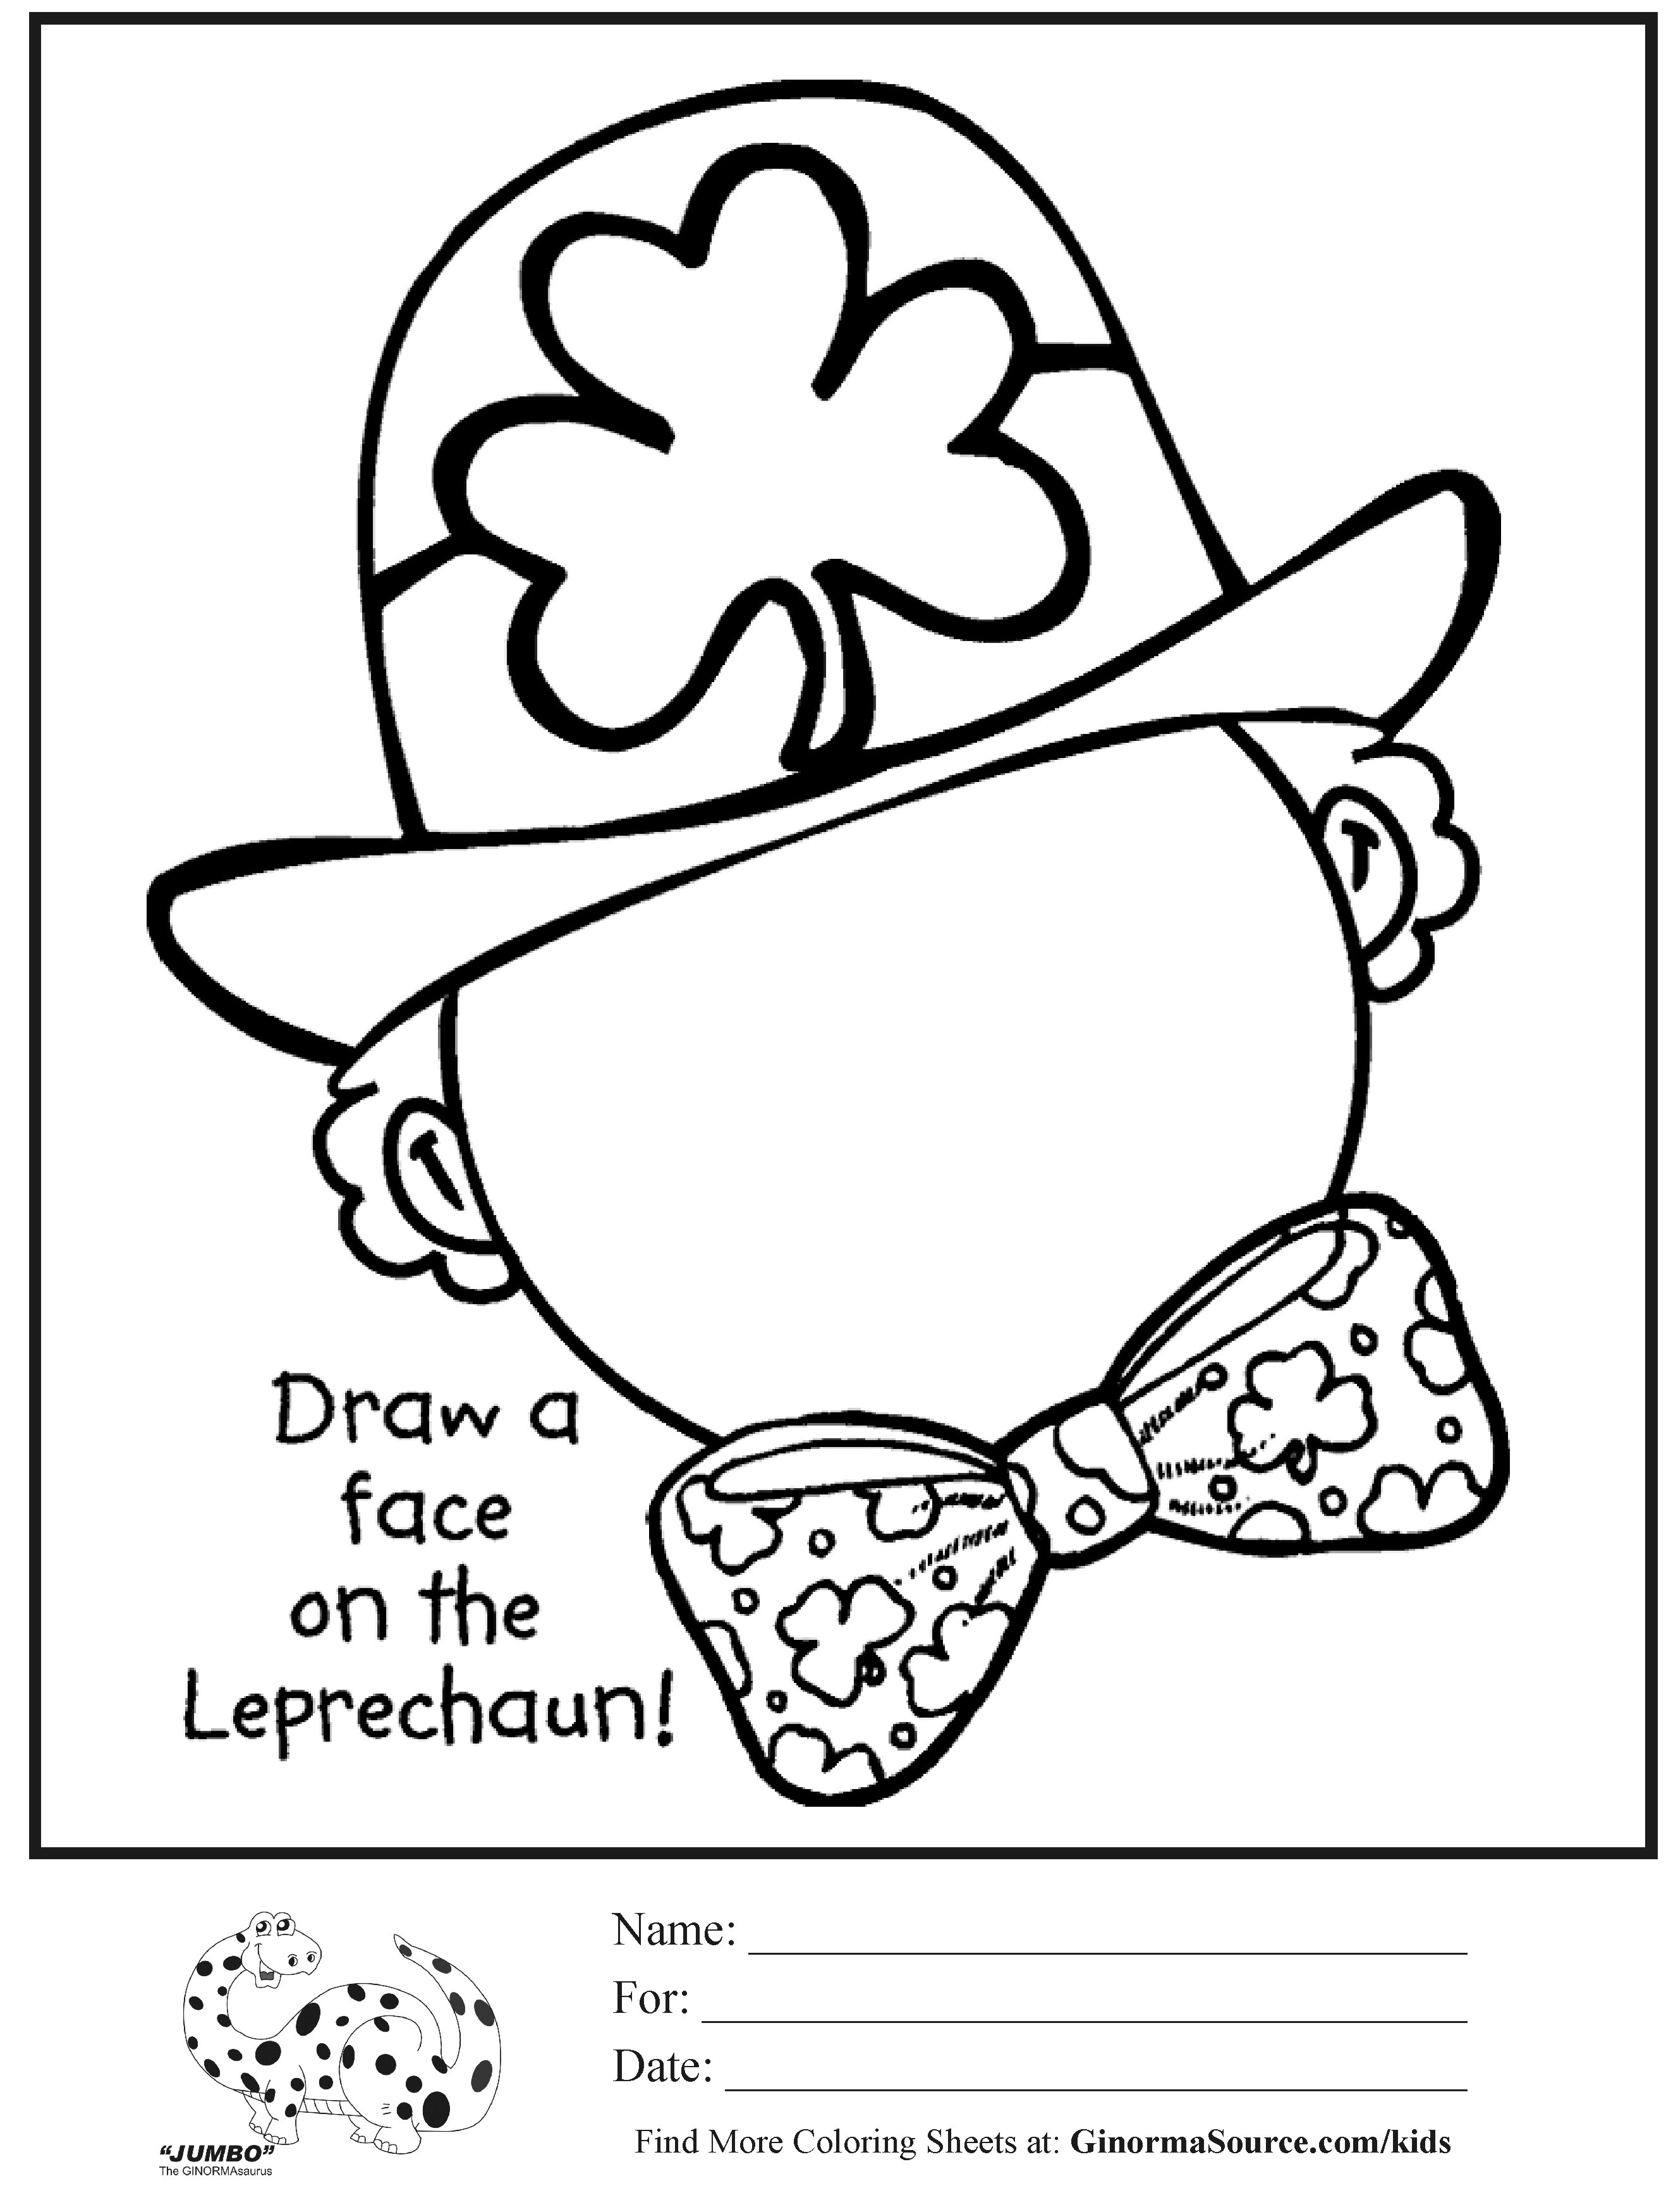 Free St Patricks Day Drawings, Download Free Clip Art, Free Clip Art - Free St Patrick's Day Printables